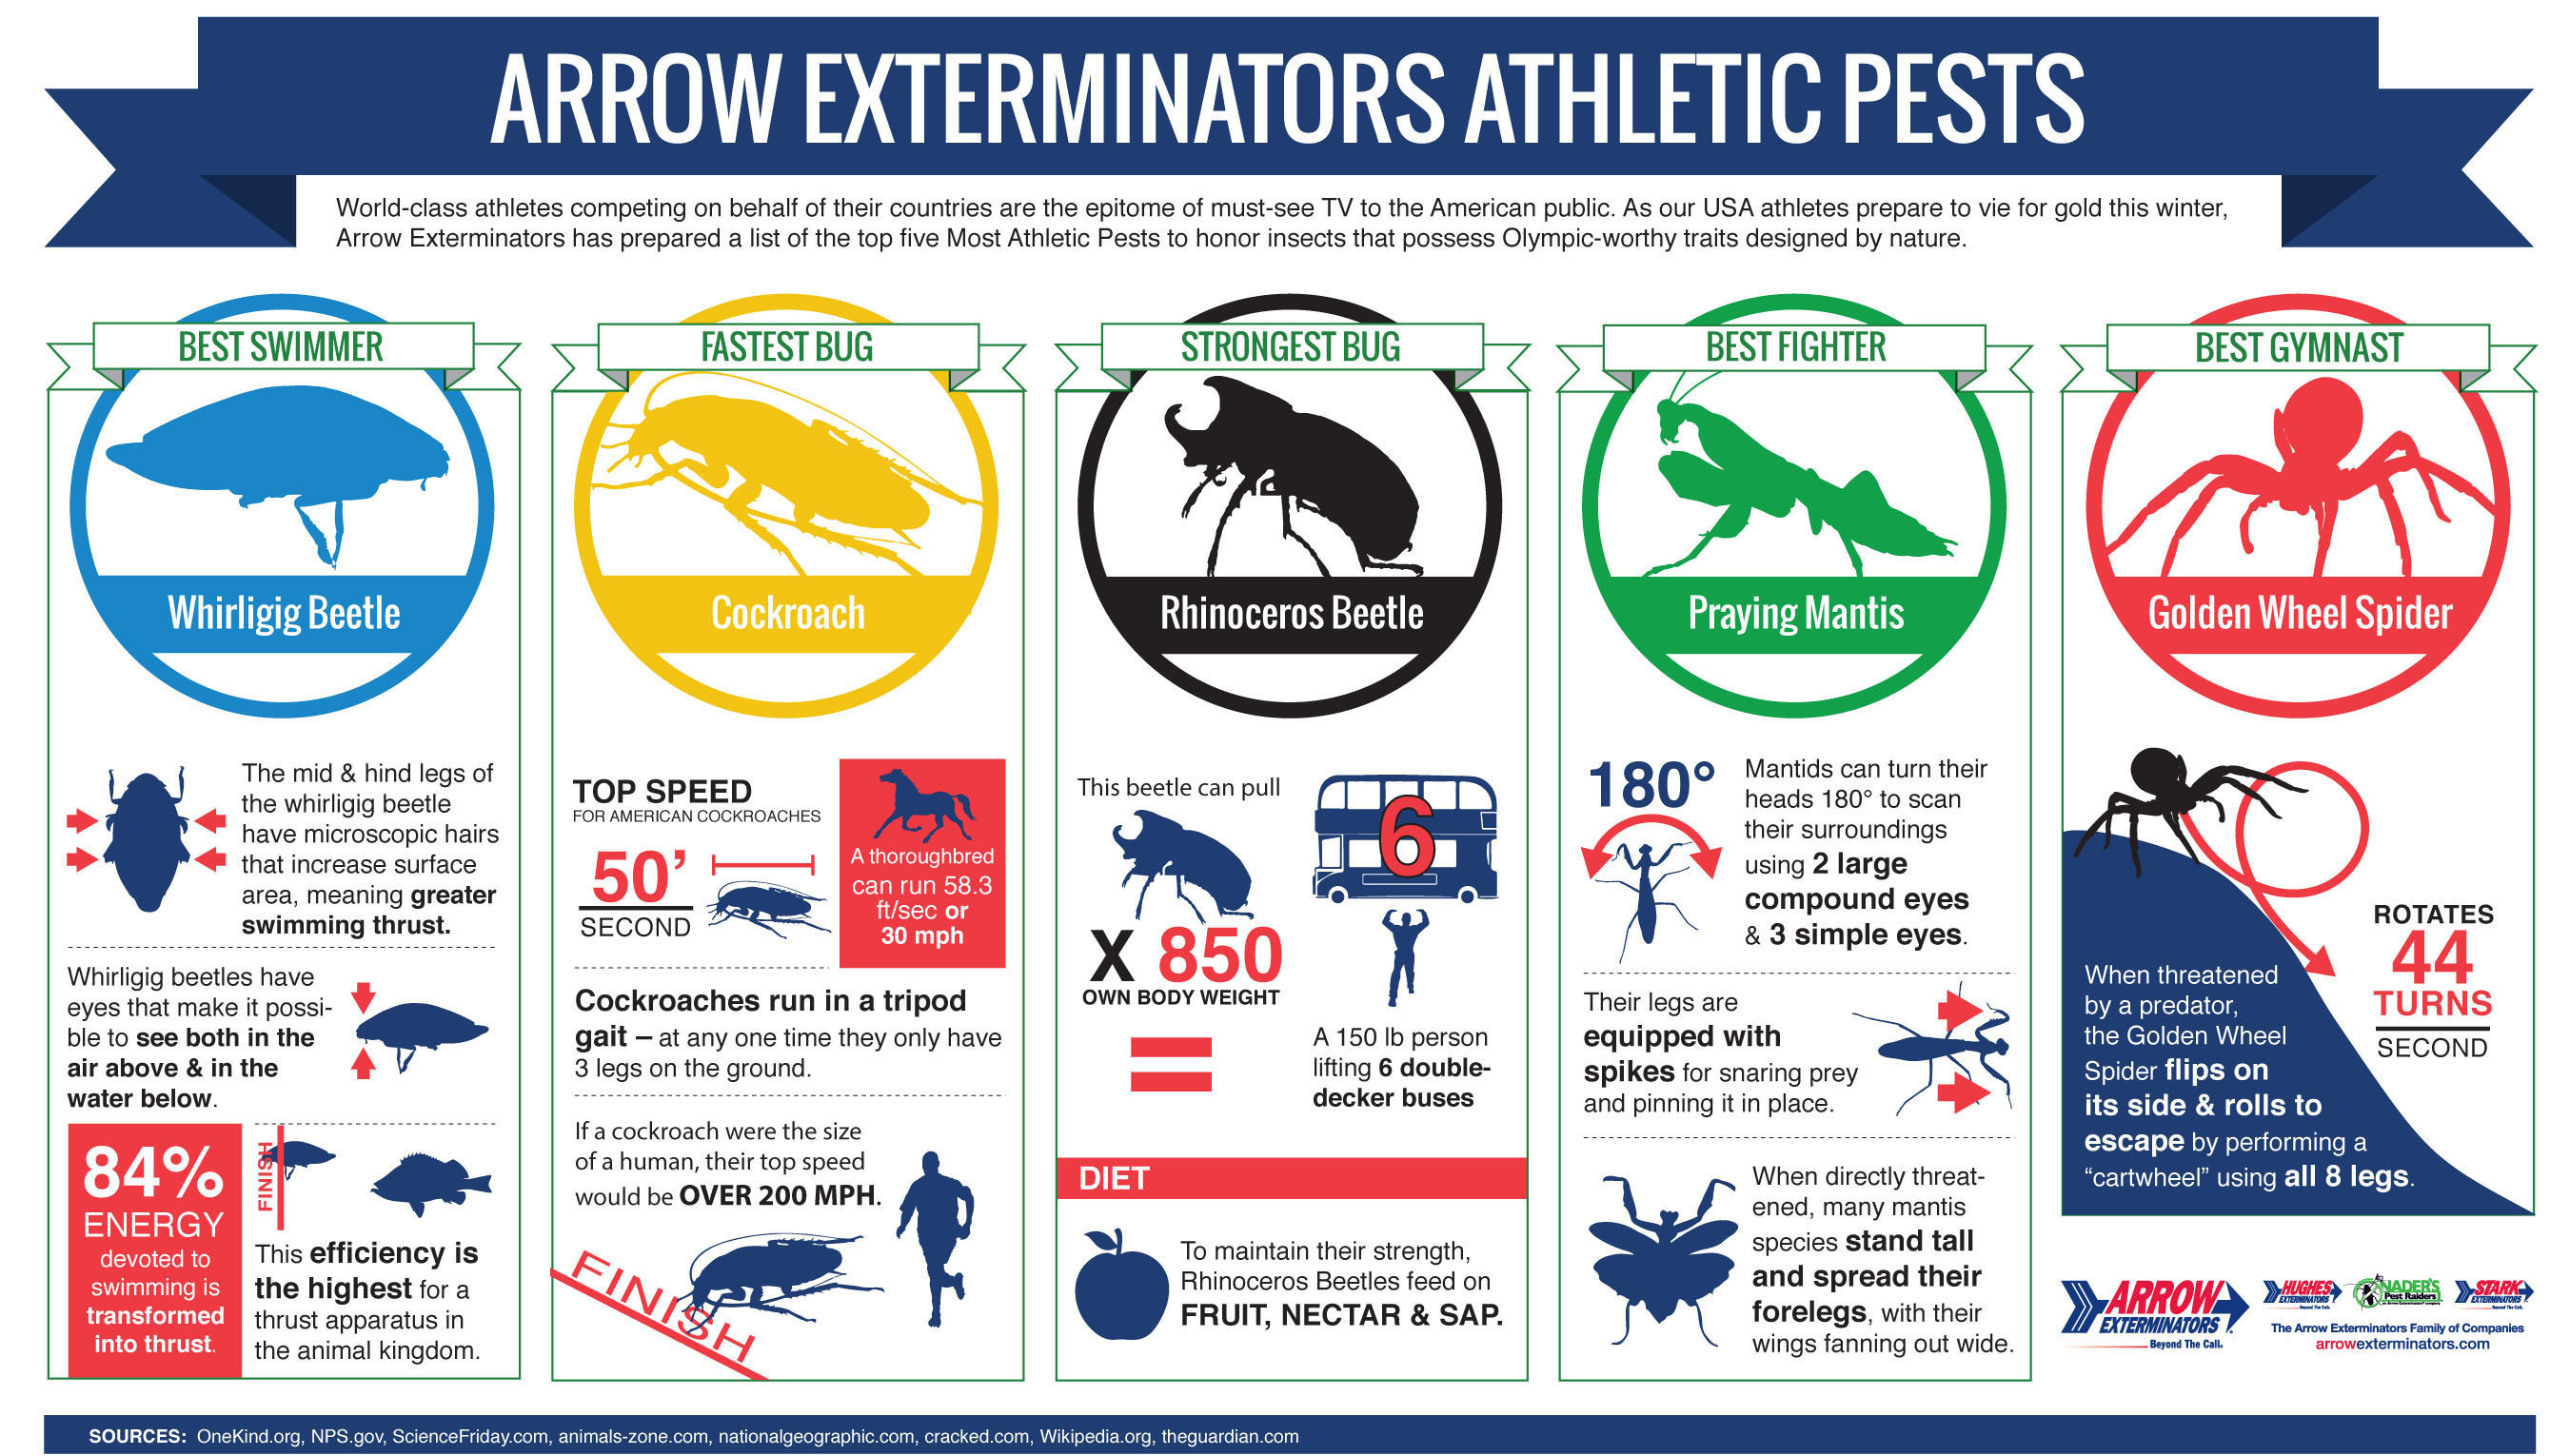 World-class athletes competing on behalf of their countries are the epitome of must-see TV to the American public. As our USA athletes prepare to vie for gold this winter, Arrow Exterminators has prepared a list of the top five Most Athletic Pests to honor insects that possess Olympic-worthy traits designed by nature.  (PRNewsFoto/Arrow Exterminators)